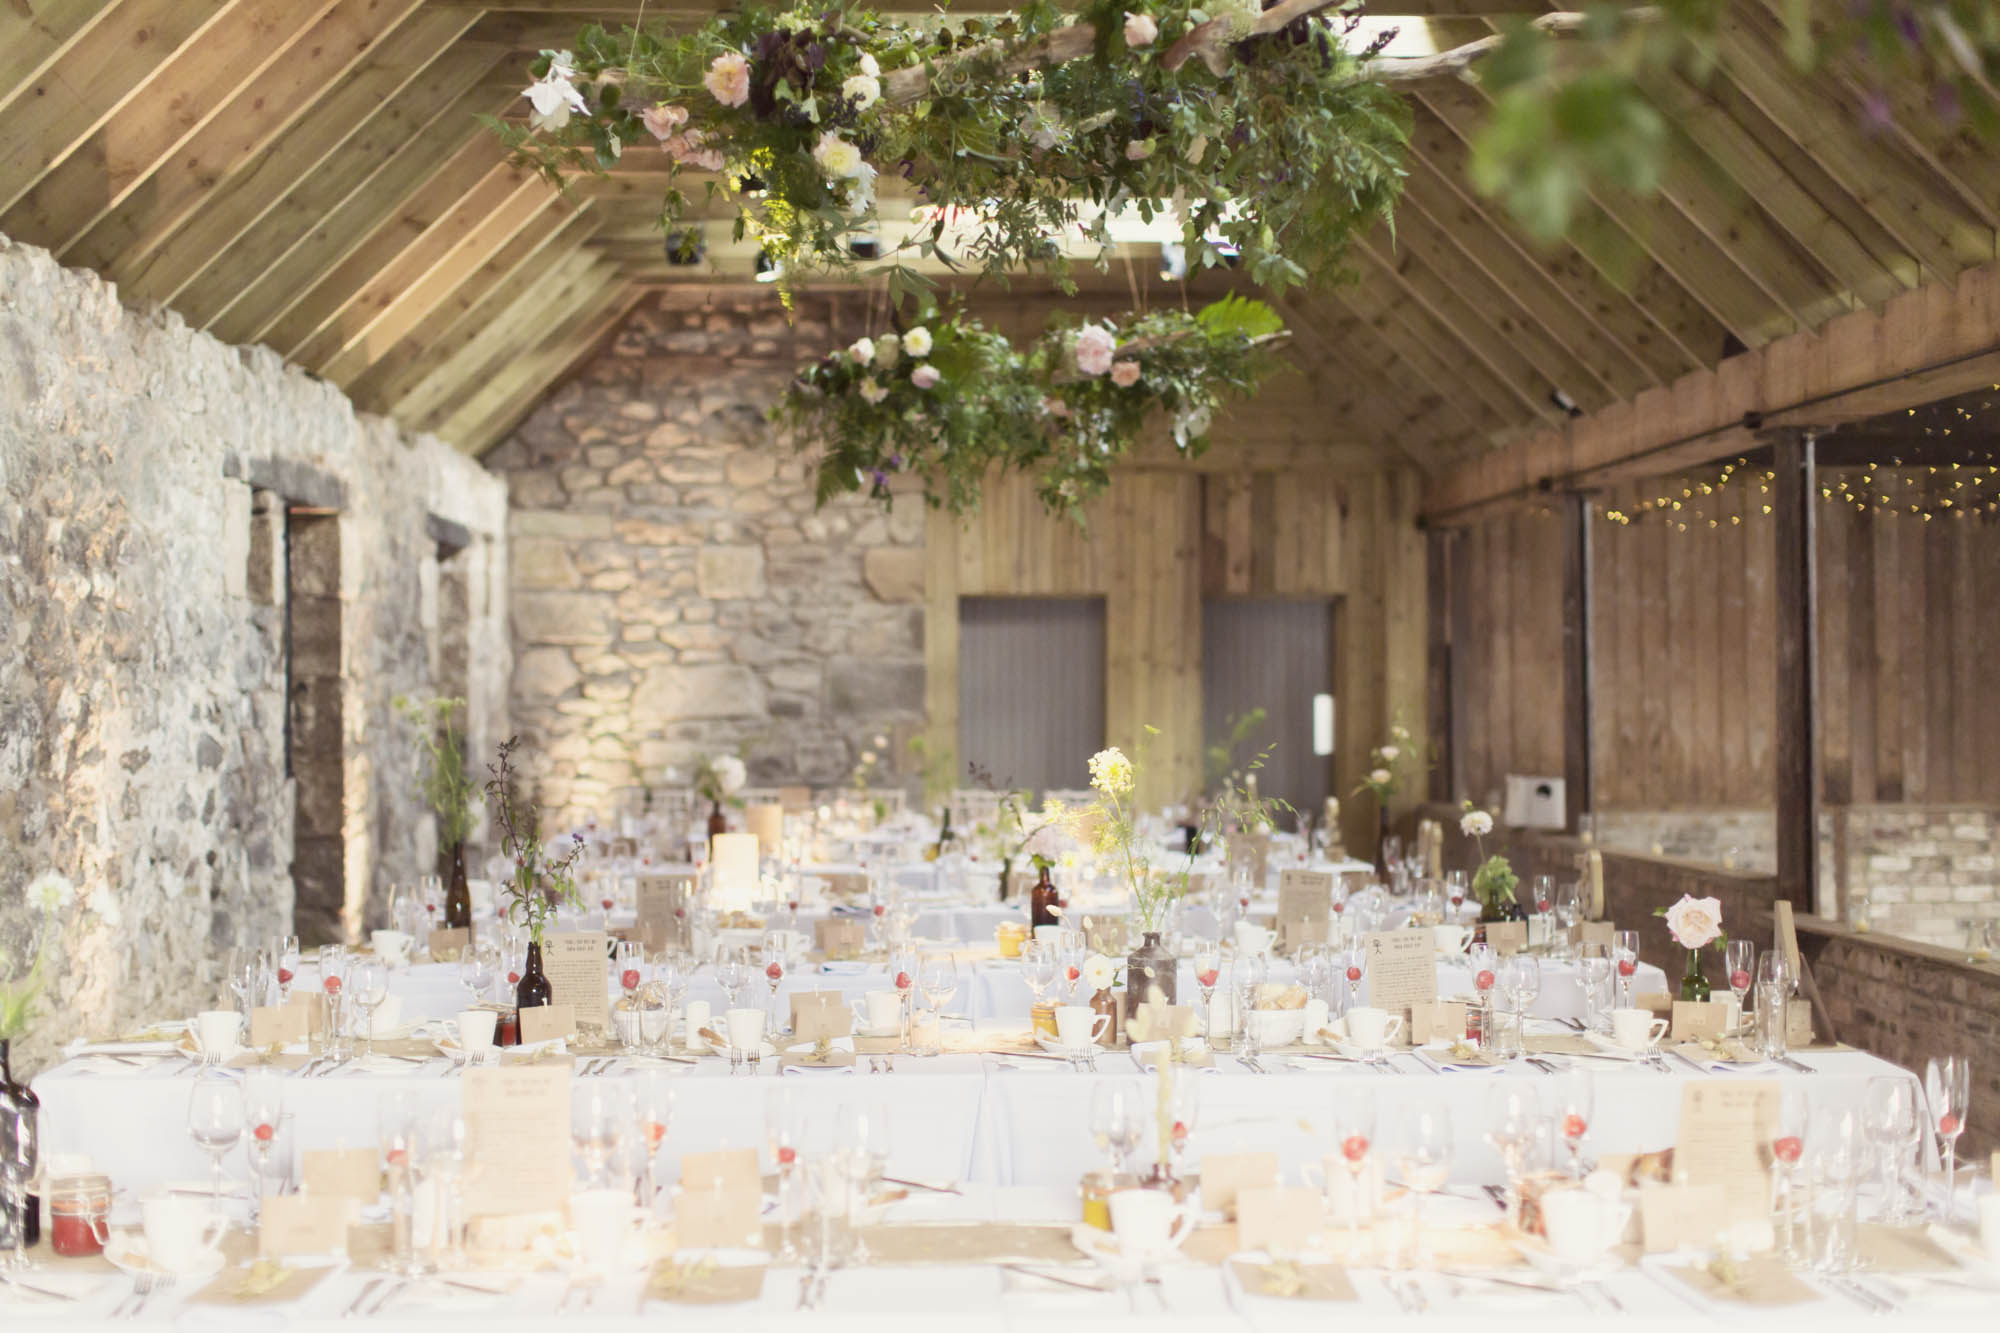 The Byre at Inchyra  Perthshire Scotland event  wedding barn  home